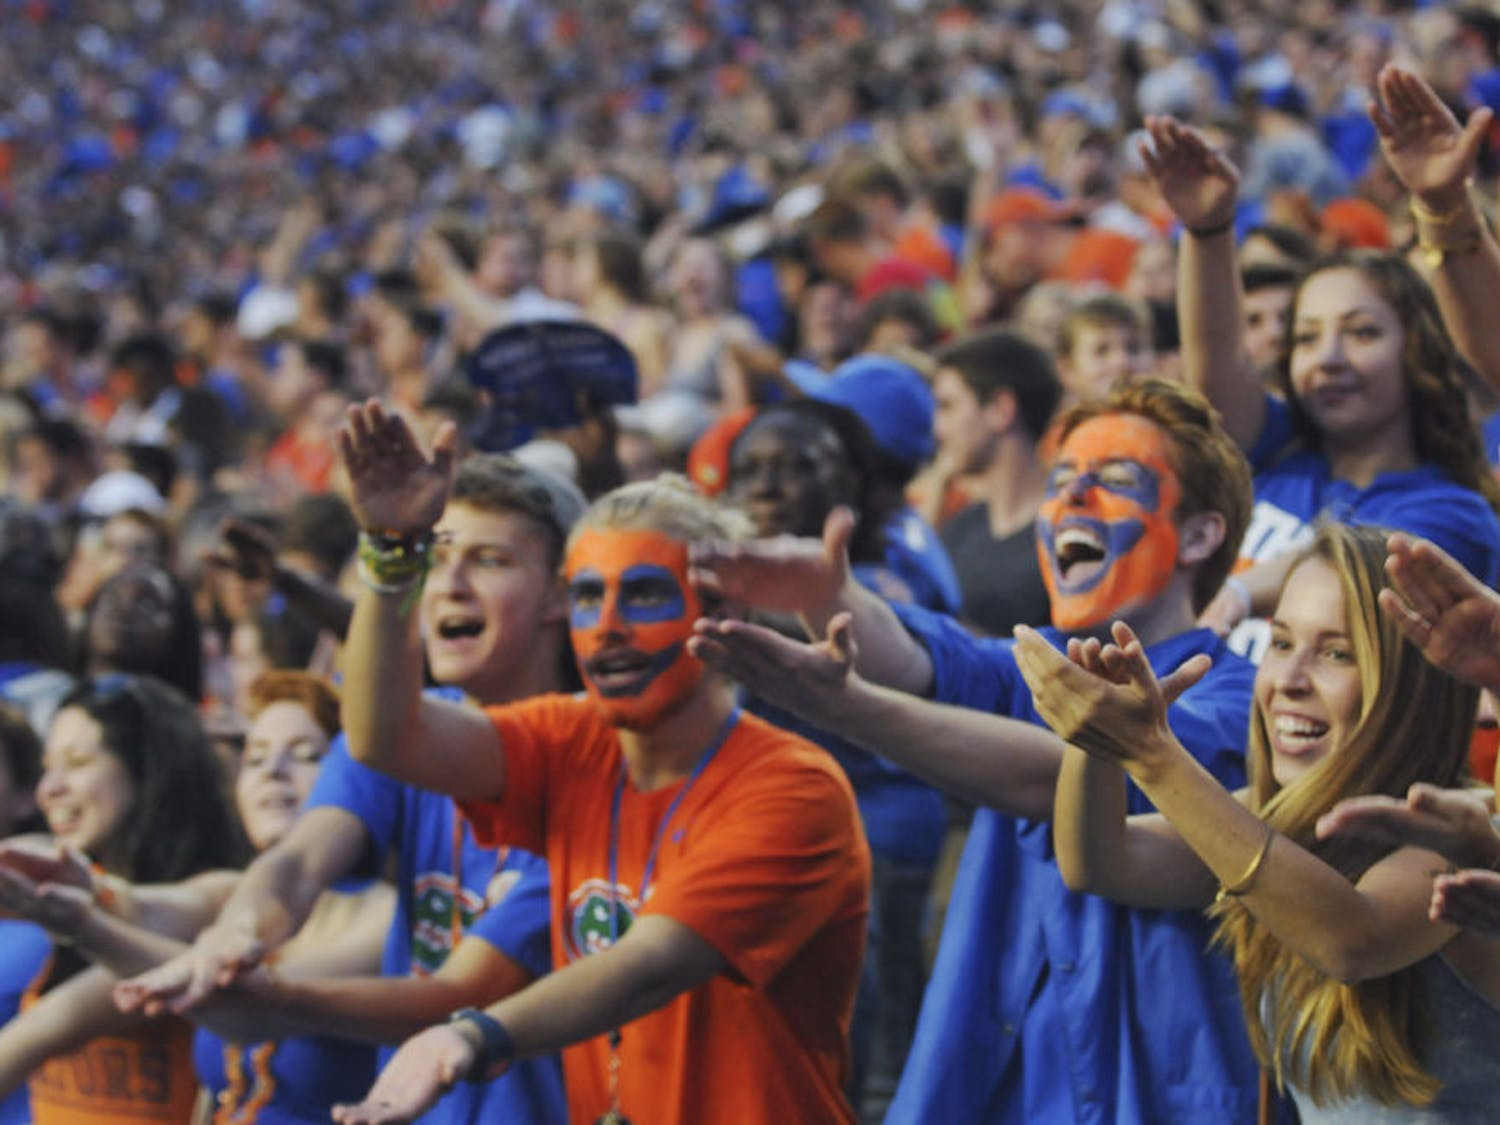 Faces painted in orange and blue, Erik Teriele (left), a UF mechanical engineer freshman, and Chris Crary, a UF computer engineer freshman, perform the Gator Chomp during the Gators' first game of the season. The 18-year-olds didn't expect to get the seats that they were assigned. Teriele said they were freaking out when they realized how close they would be to the field.